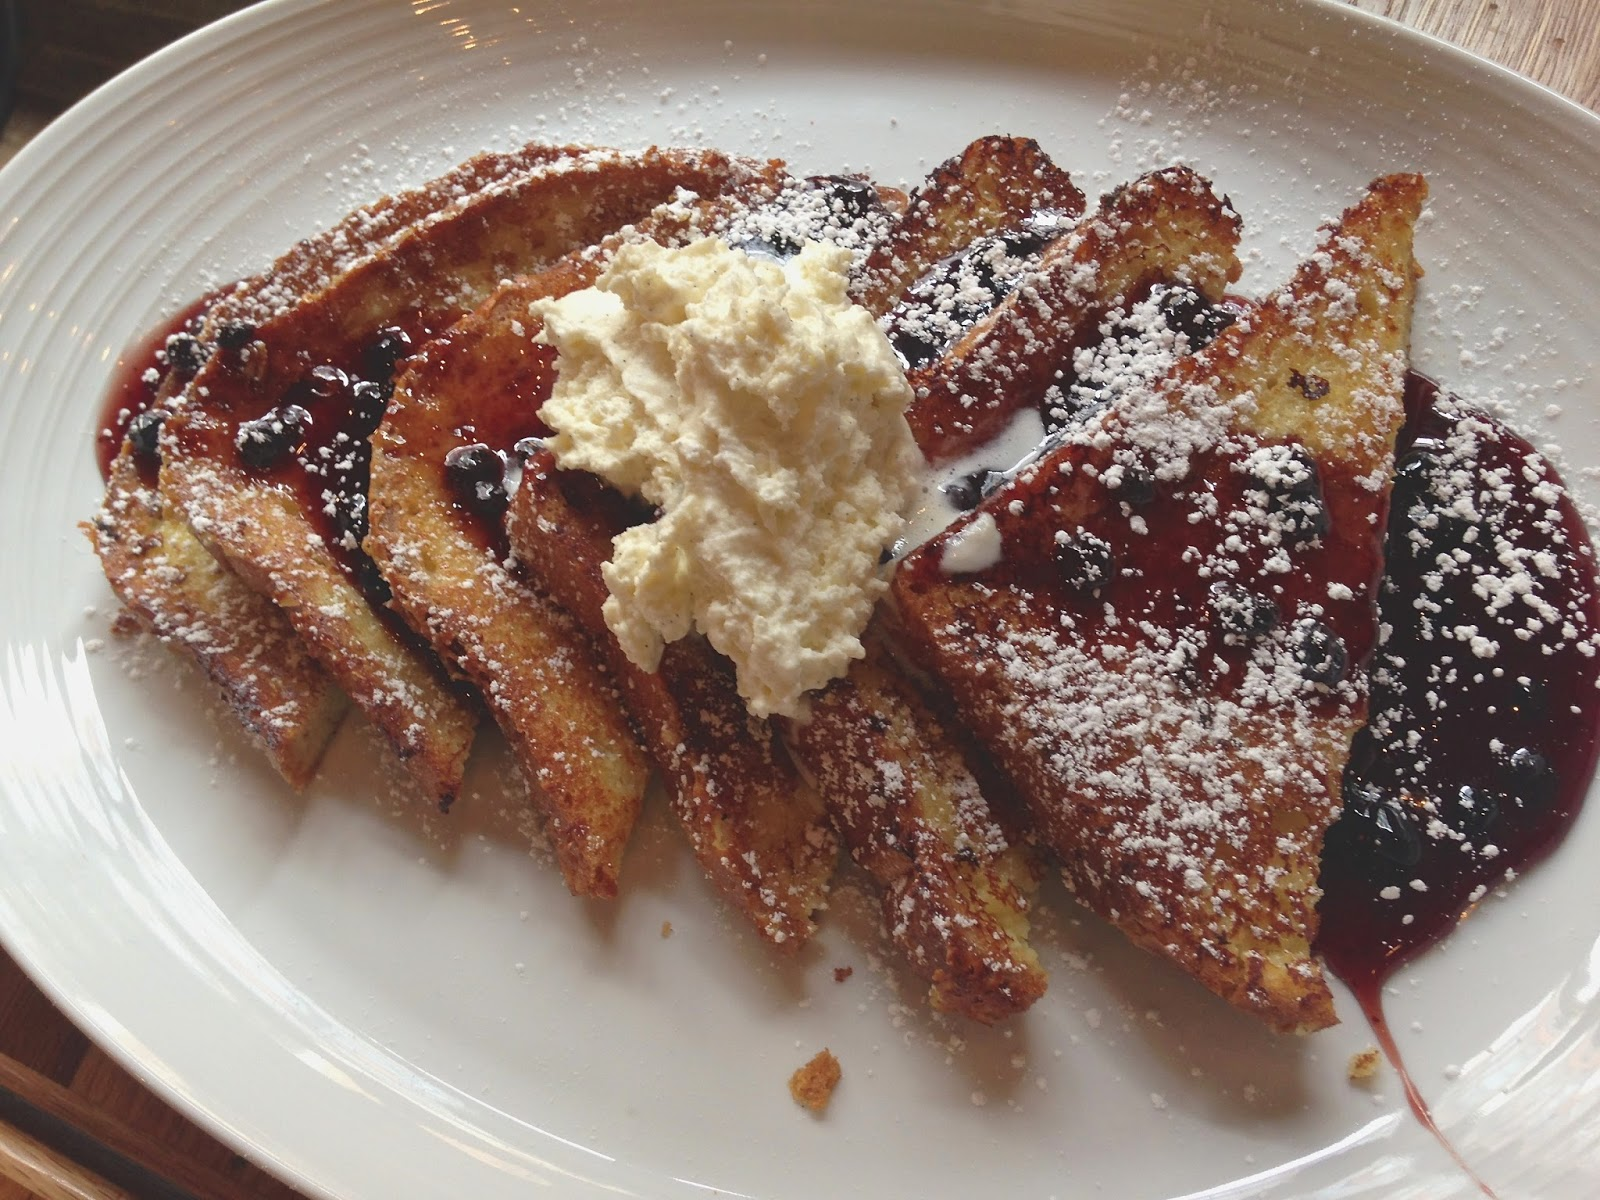 Cinnamon French Toast with Vermont Maple Syrup